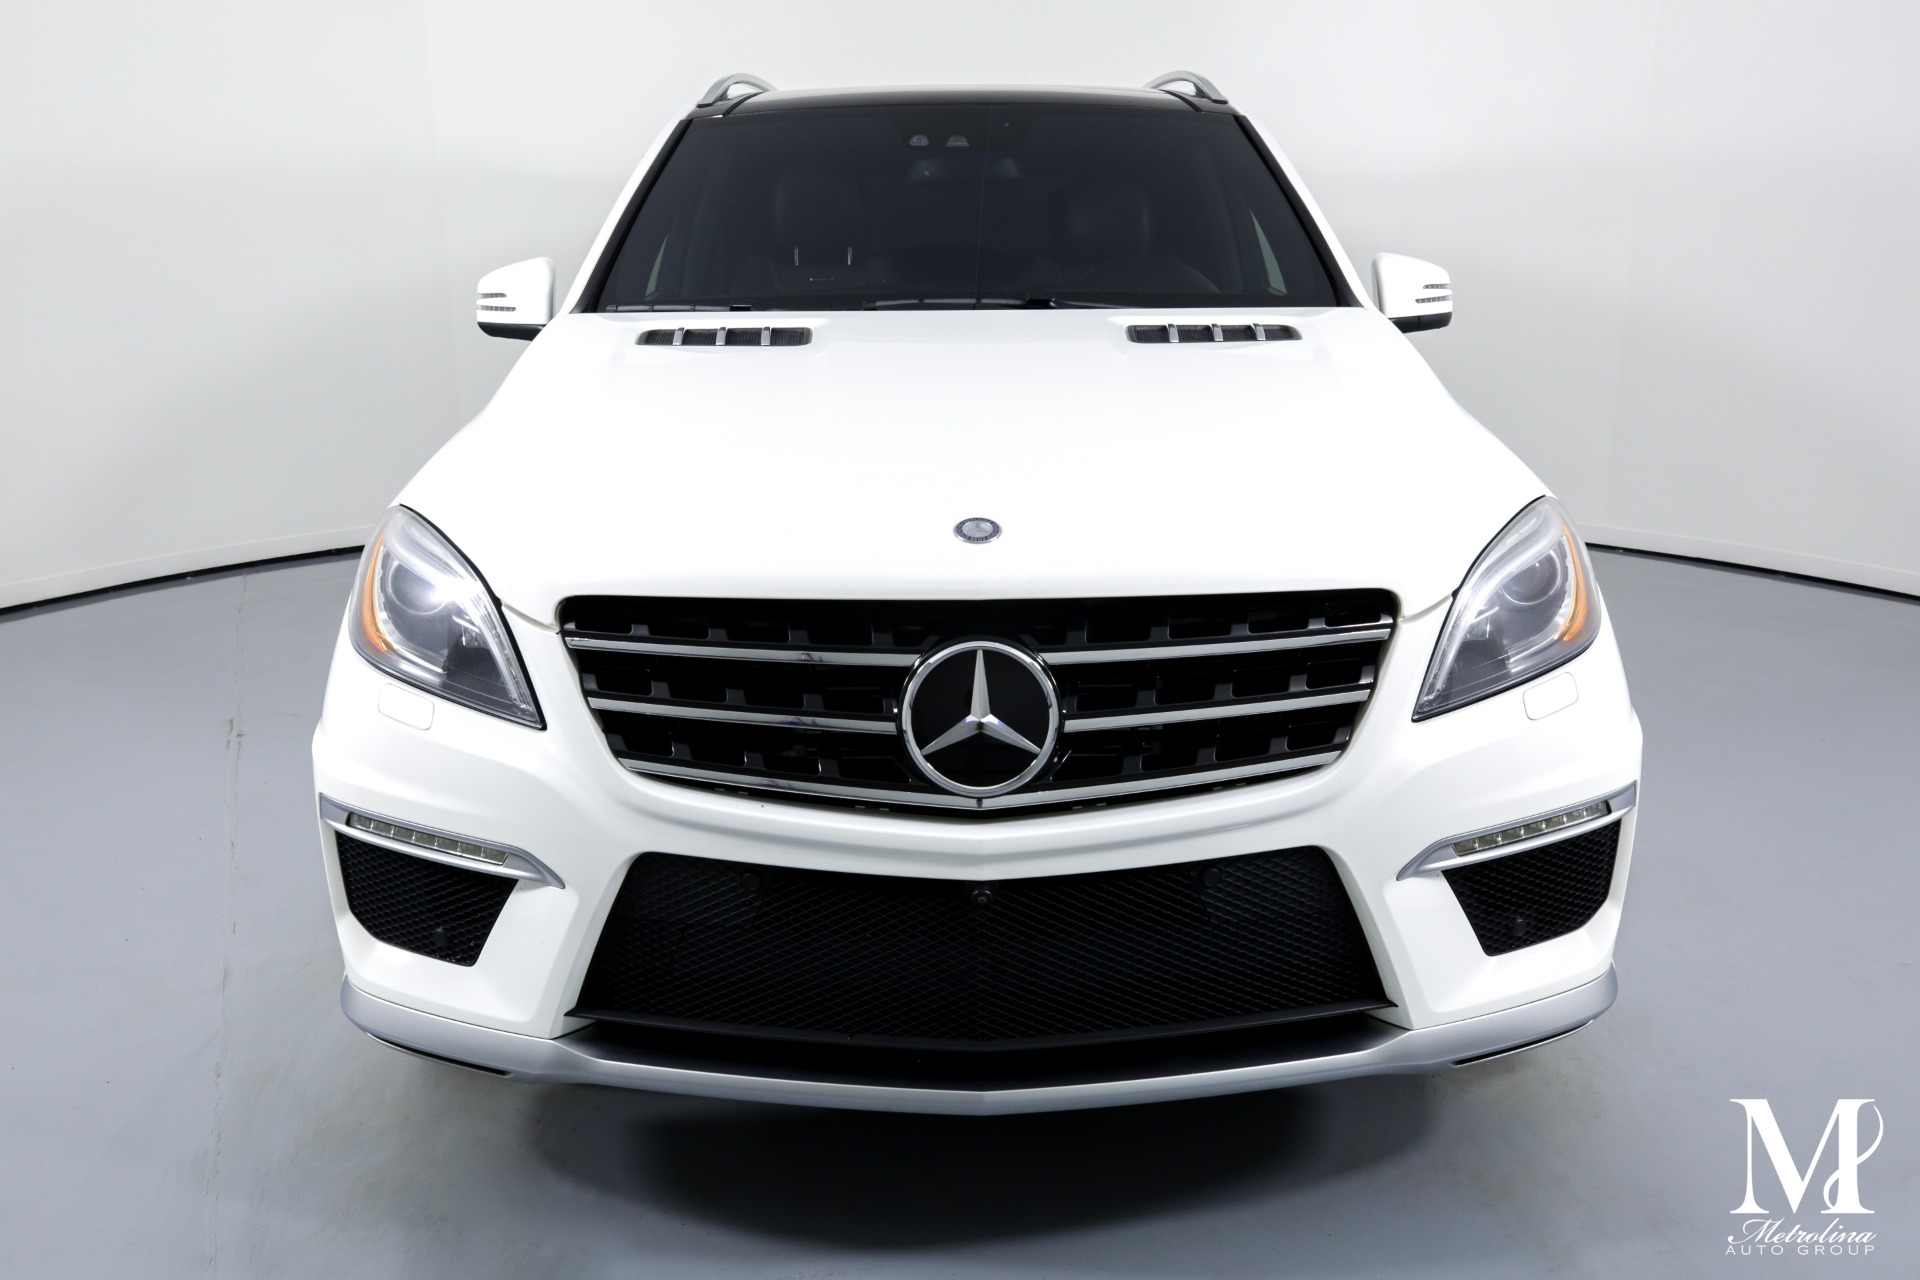 Used 2015 Mercedes-Benz M-Class ML 63 AMG for sale Sold at Metrolina Auto Group in Charlotte NC 28217 - 3